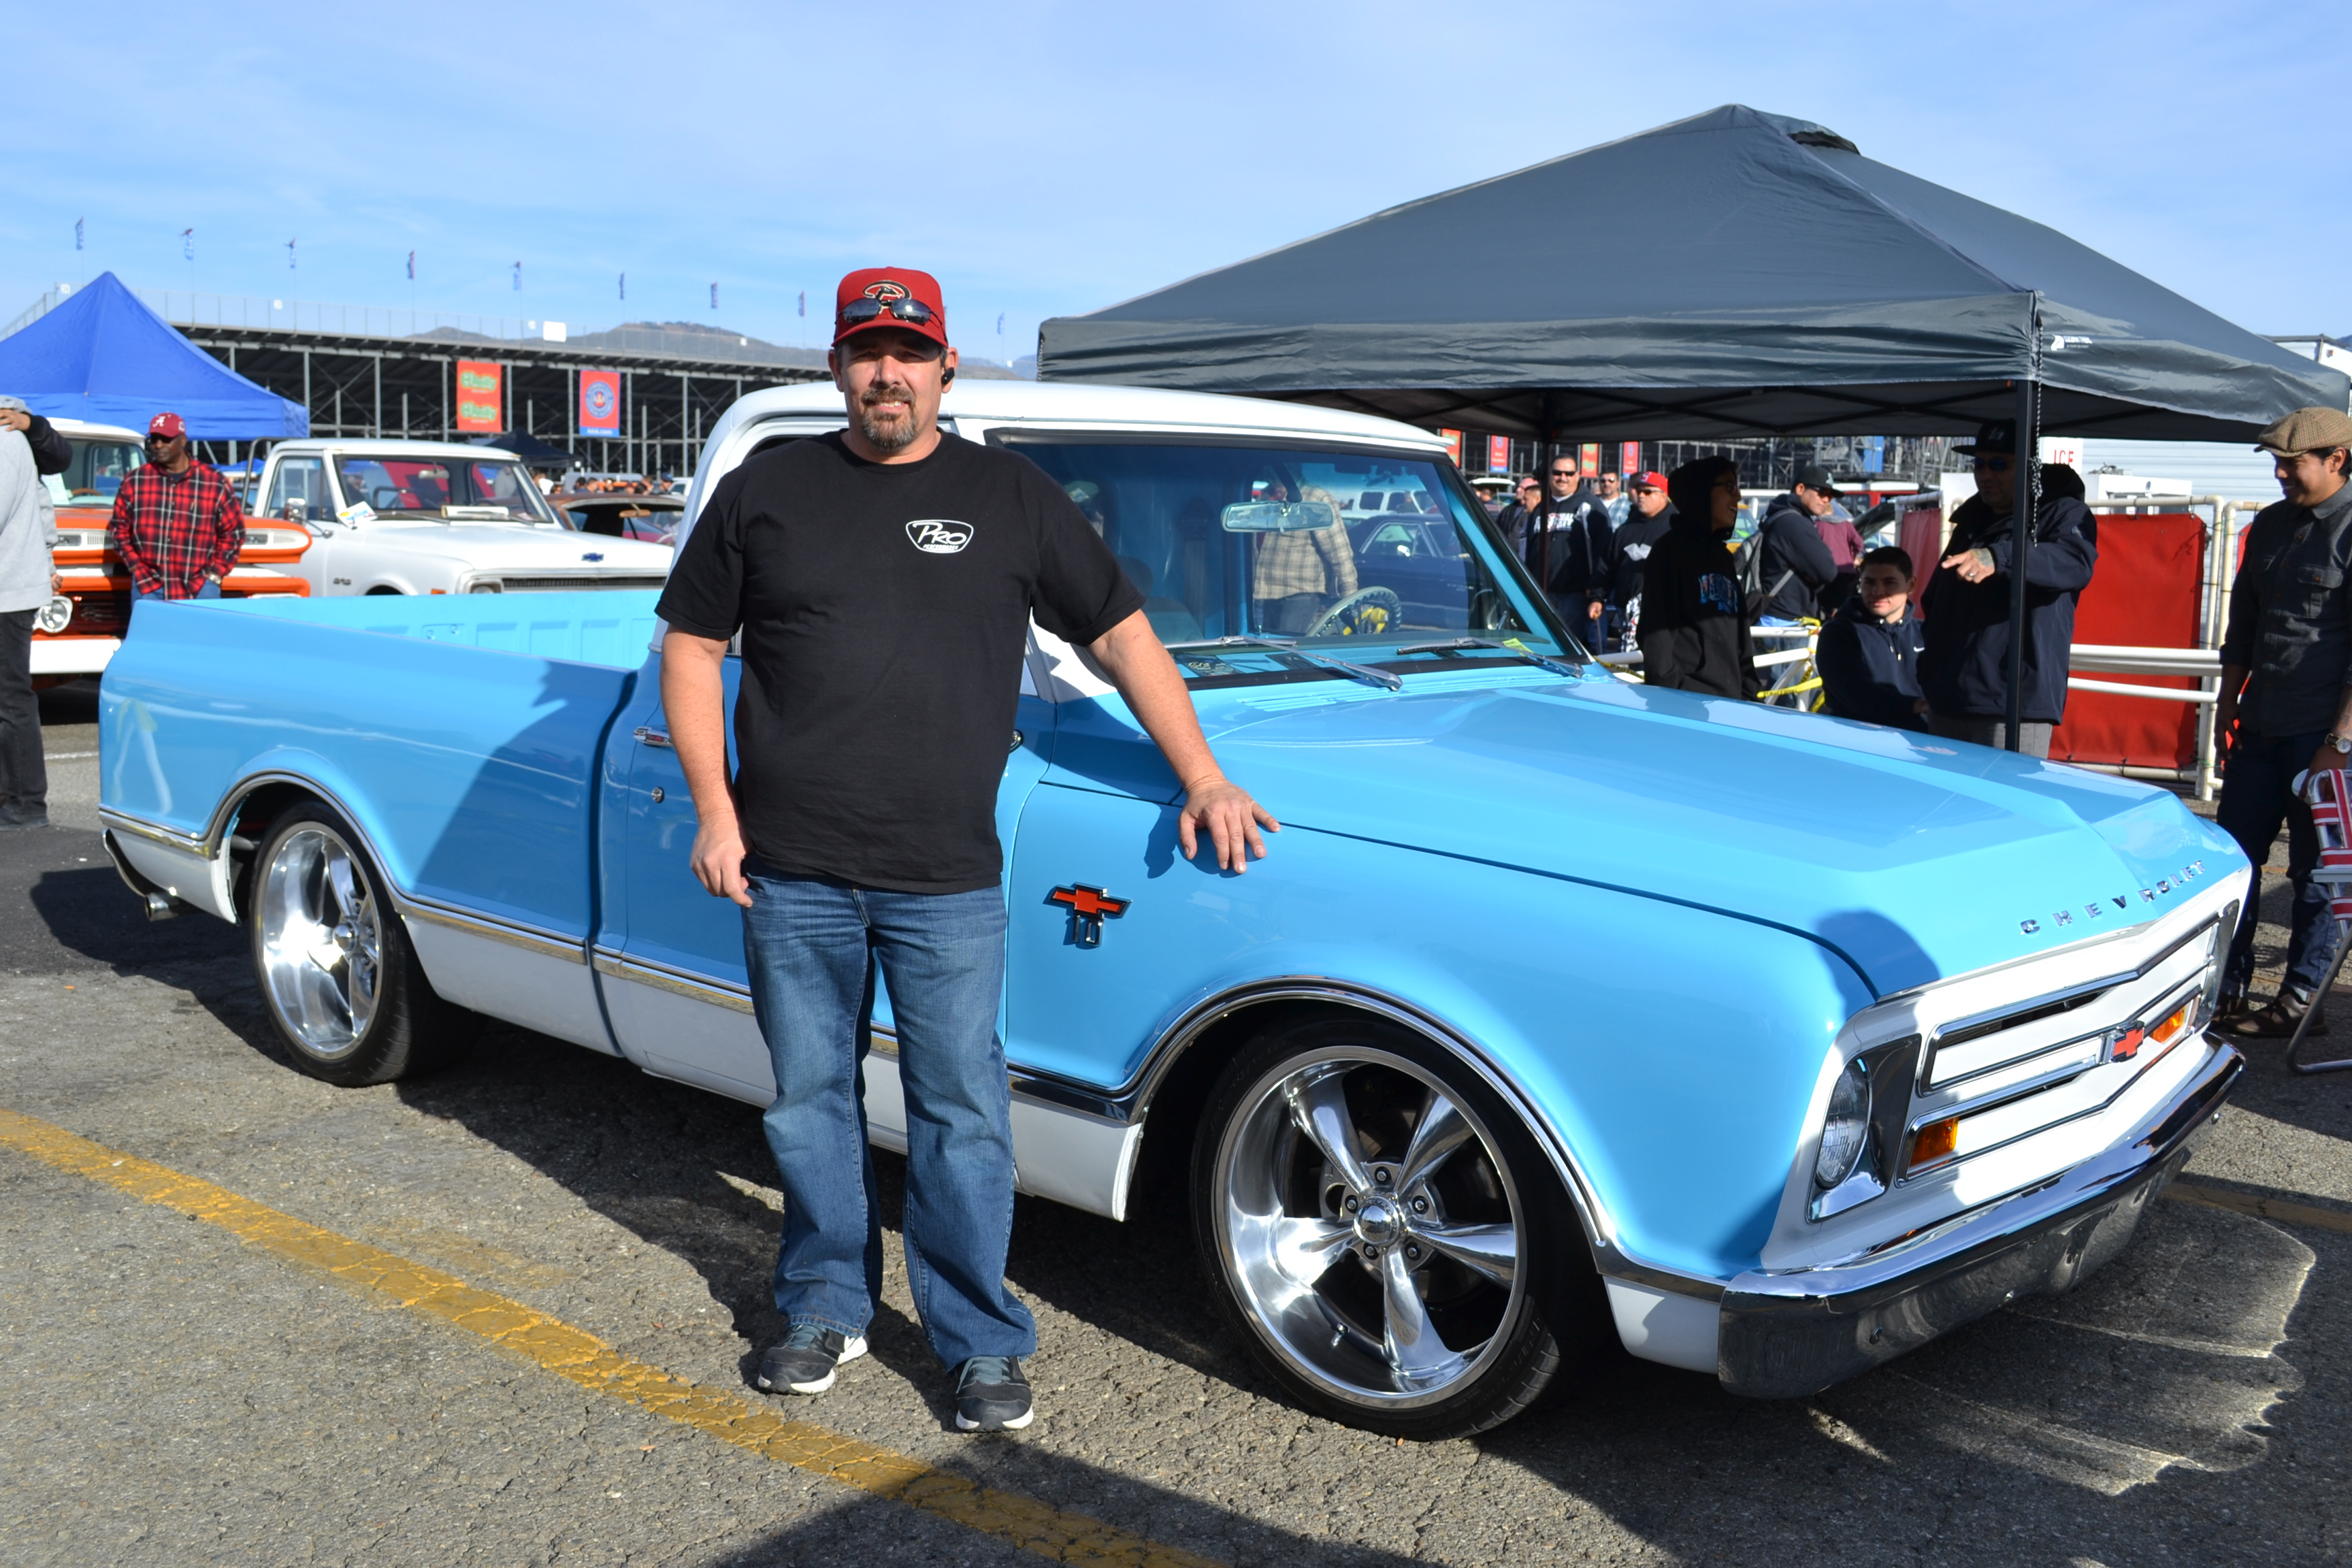 Mark Postula '67 C10 | Pomona Swap Meet